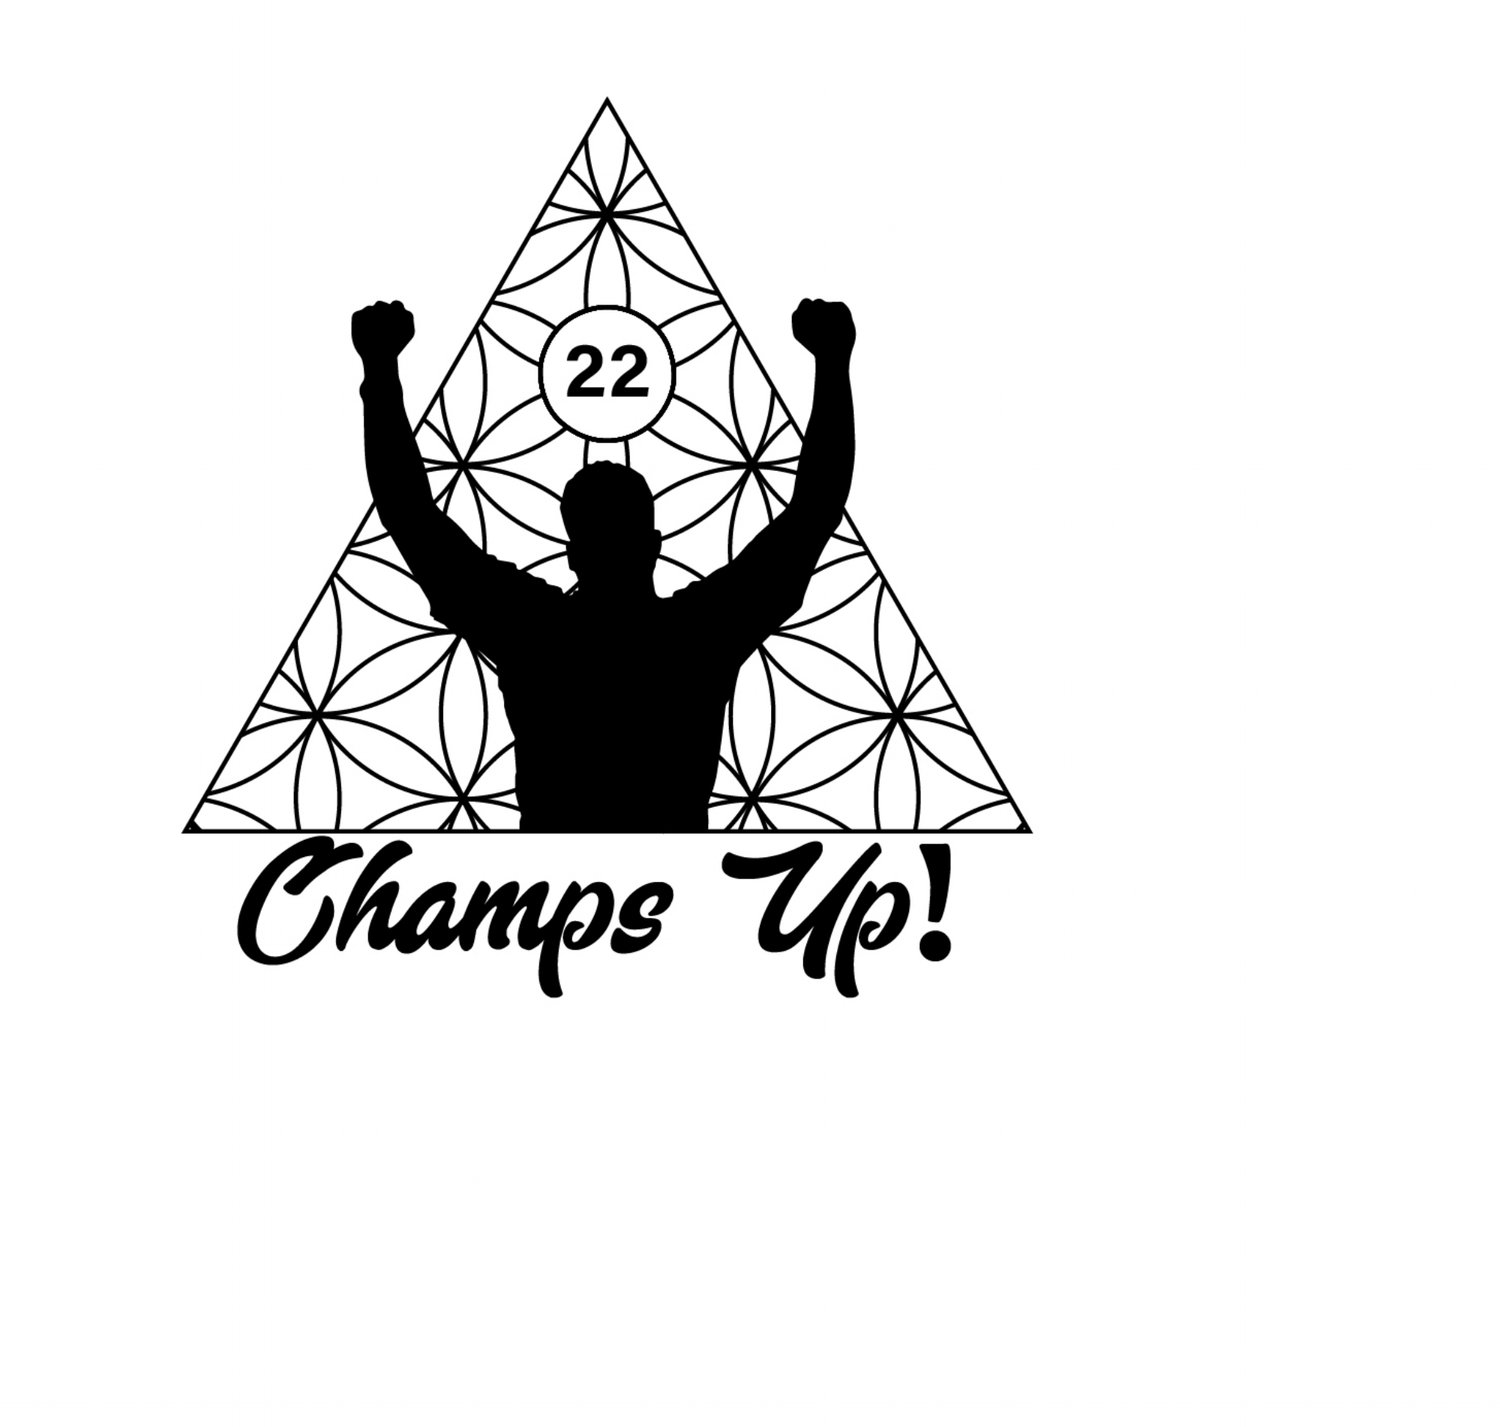 The Champs Up Movement